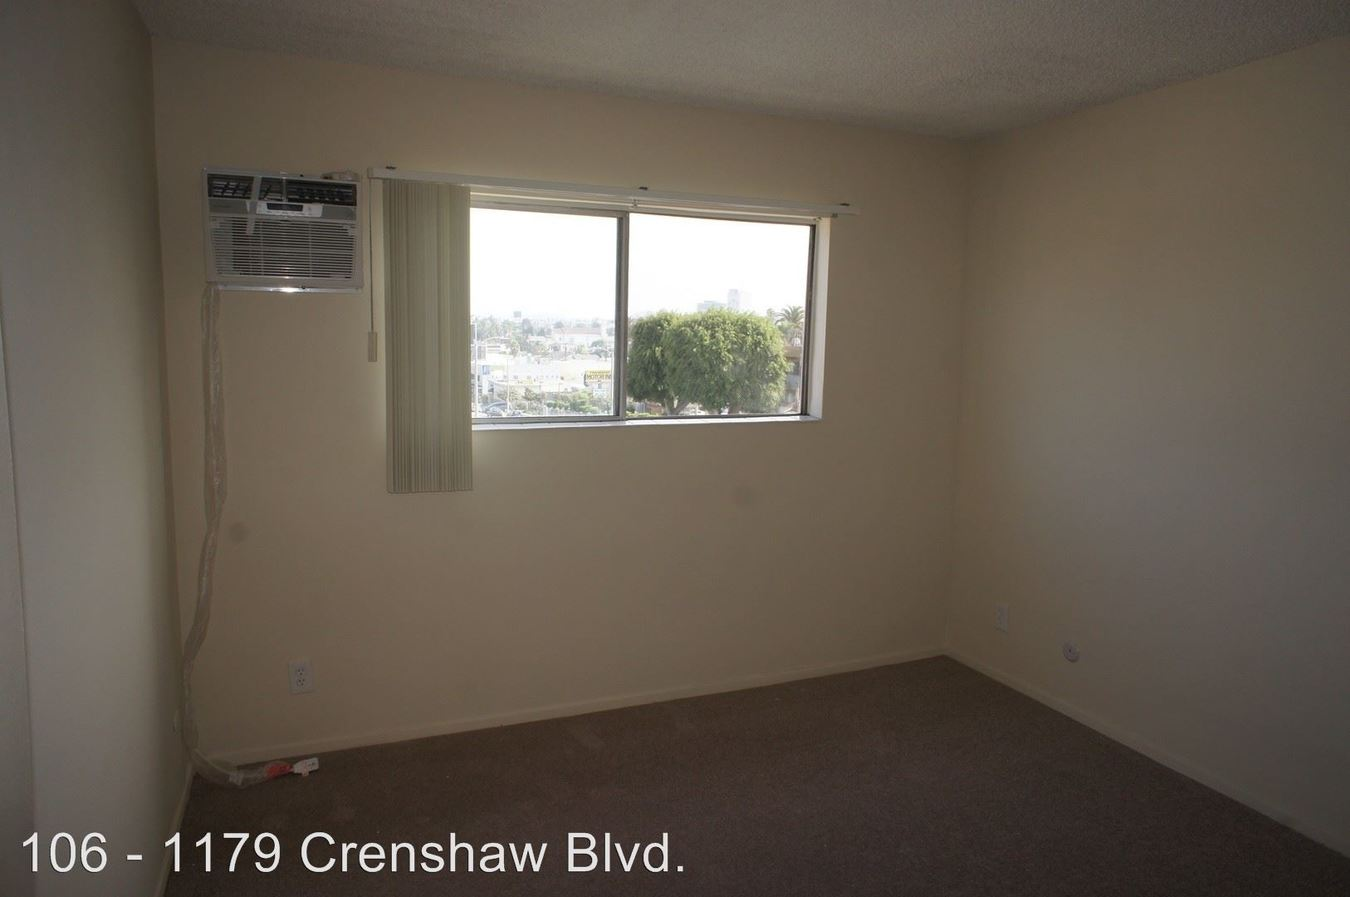 2 Bedrooms 1 Bathroom Apartment for rent at 1179 S. Crenshaw Blvd. in Los Angeles, CA